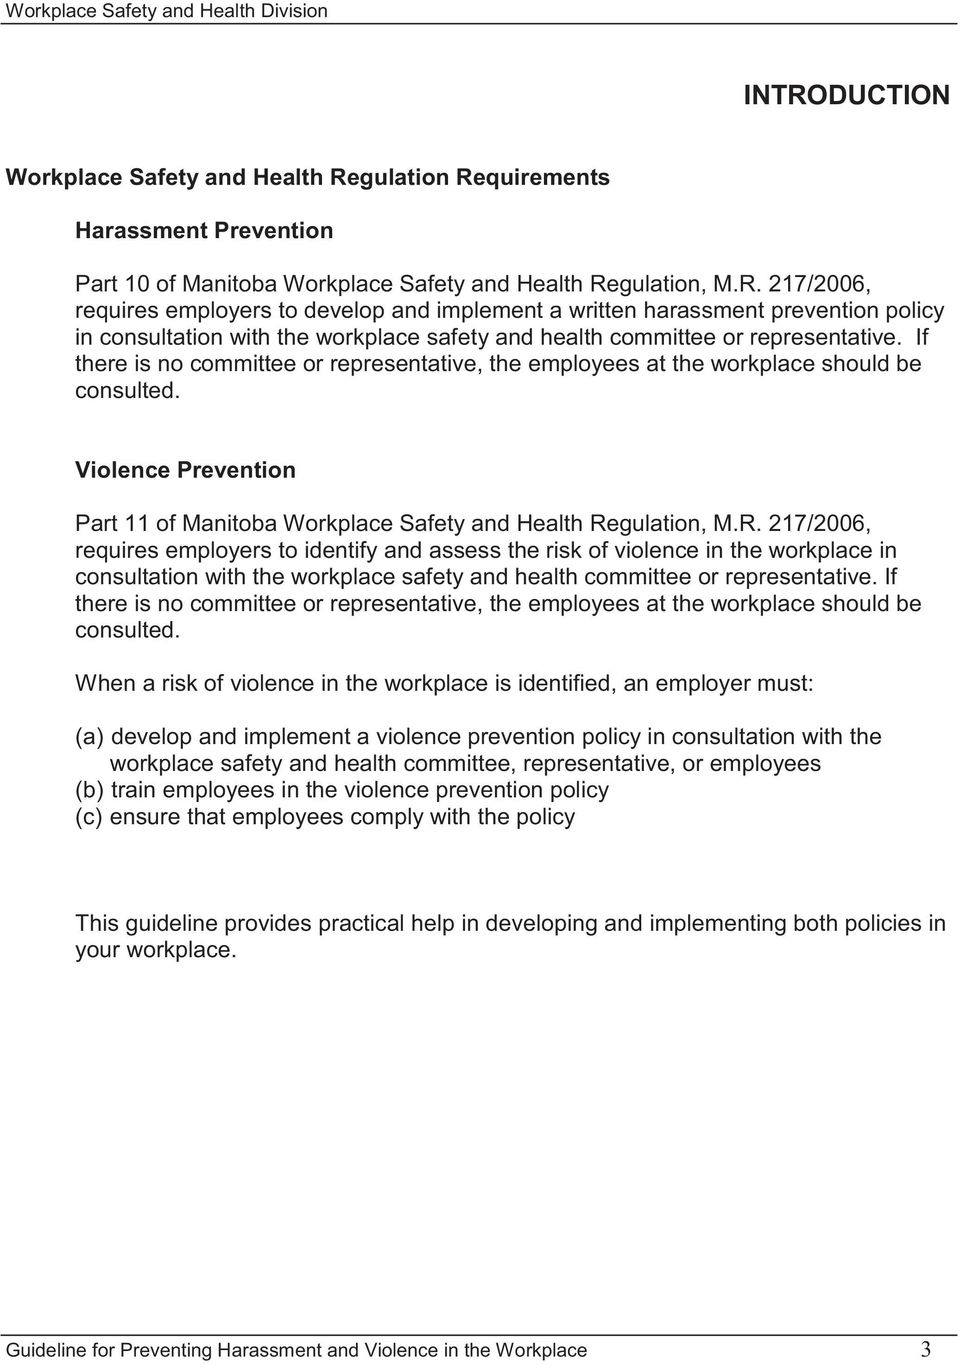 gulation, M.R. 217/2006, requires employers to identify and assess the risk of violence in the workplace in consultation with the workplace safety and health committee or representative.